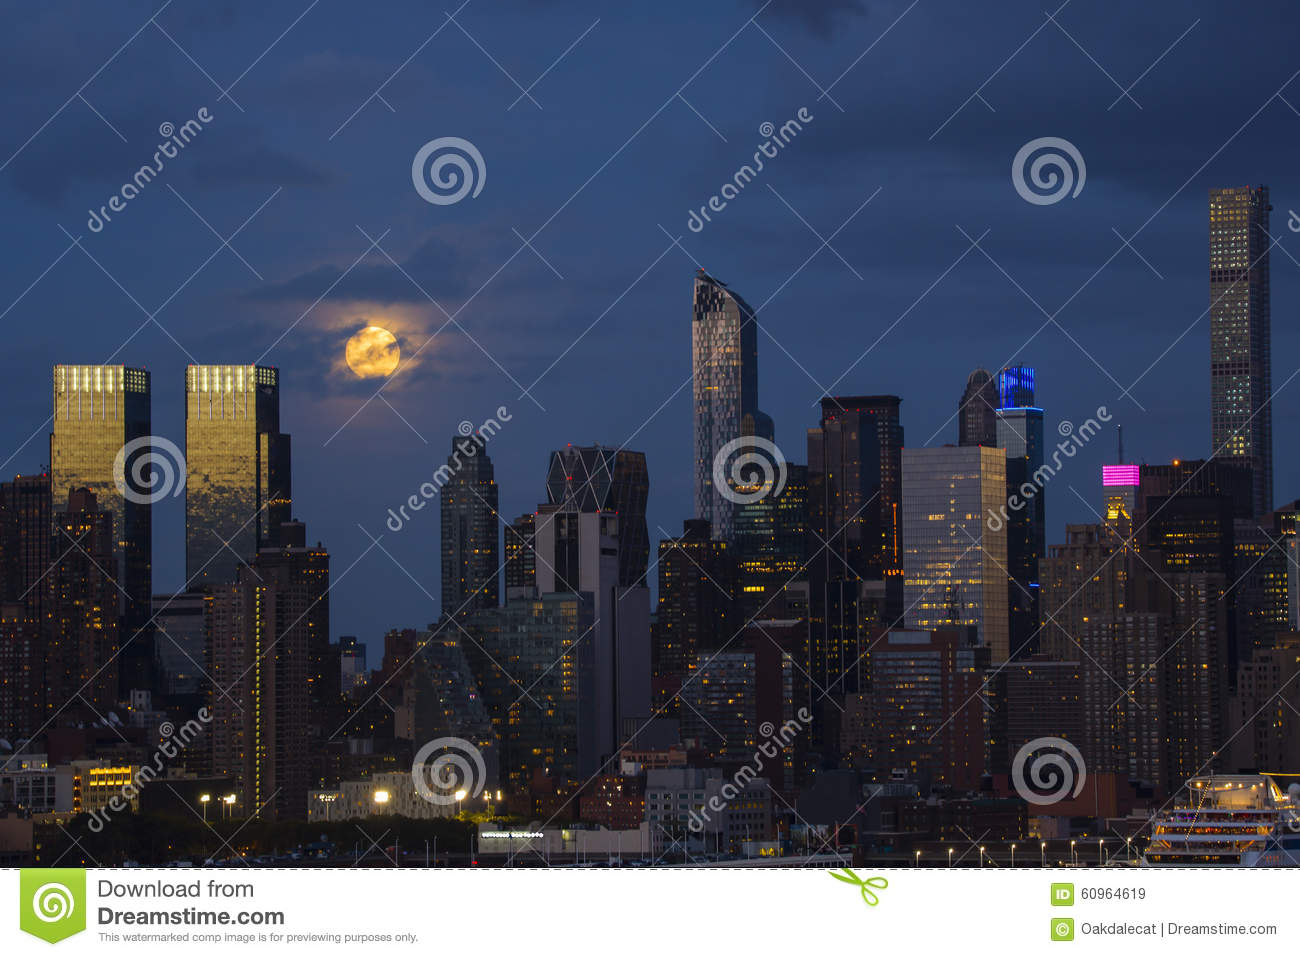 c1c4c30e97a06 Night Scene Super Full Moon City Lights Stock Images - Download 11 Royalty  Free Photos